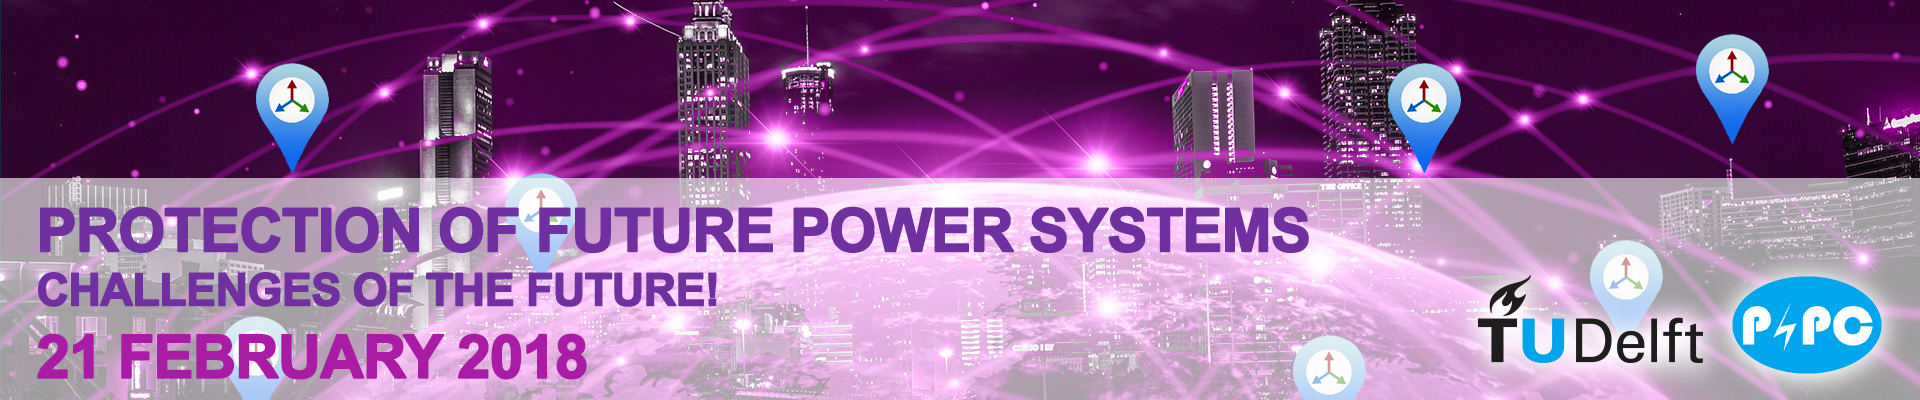 "Protection of Future Power Systems - ""Challenges of the Future"""